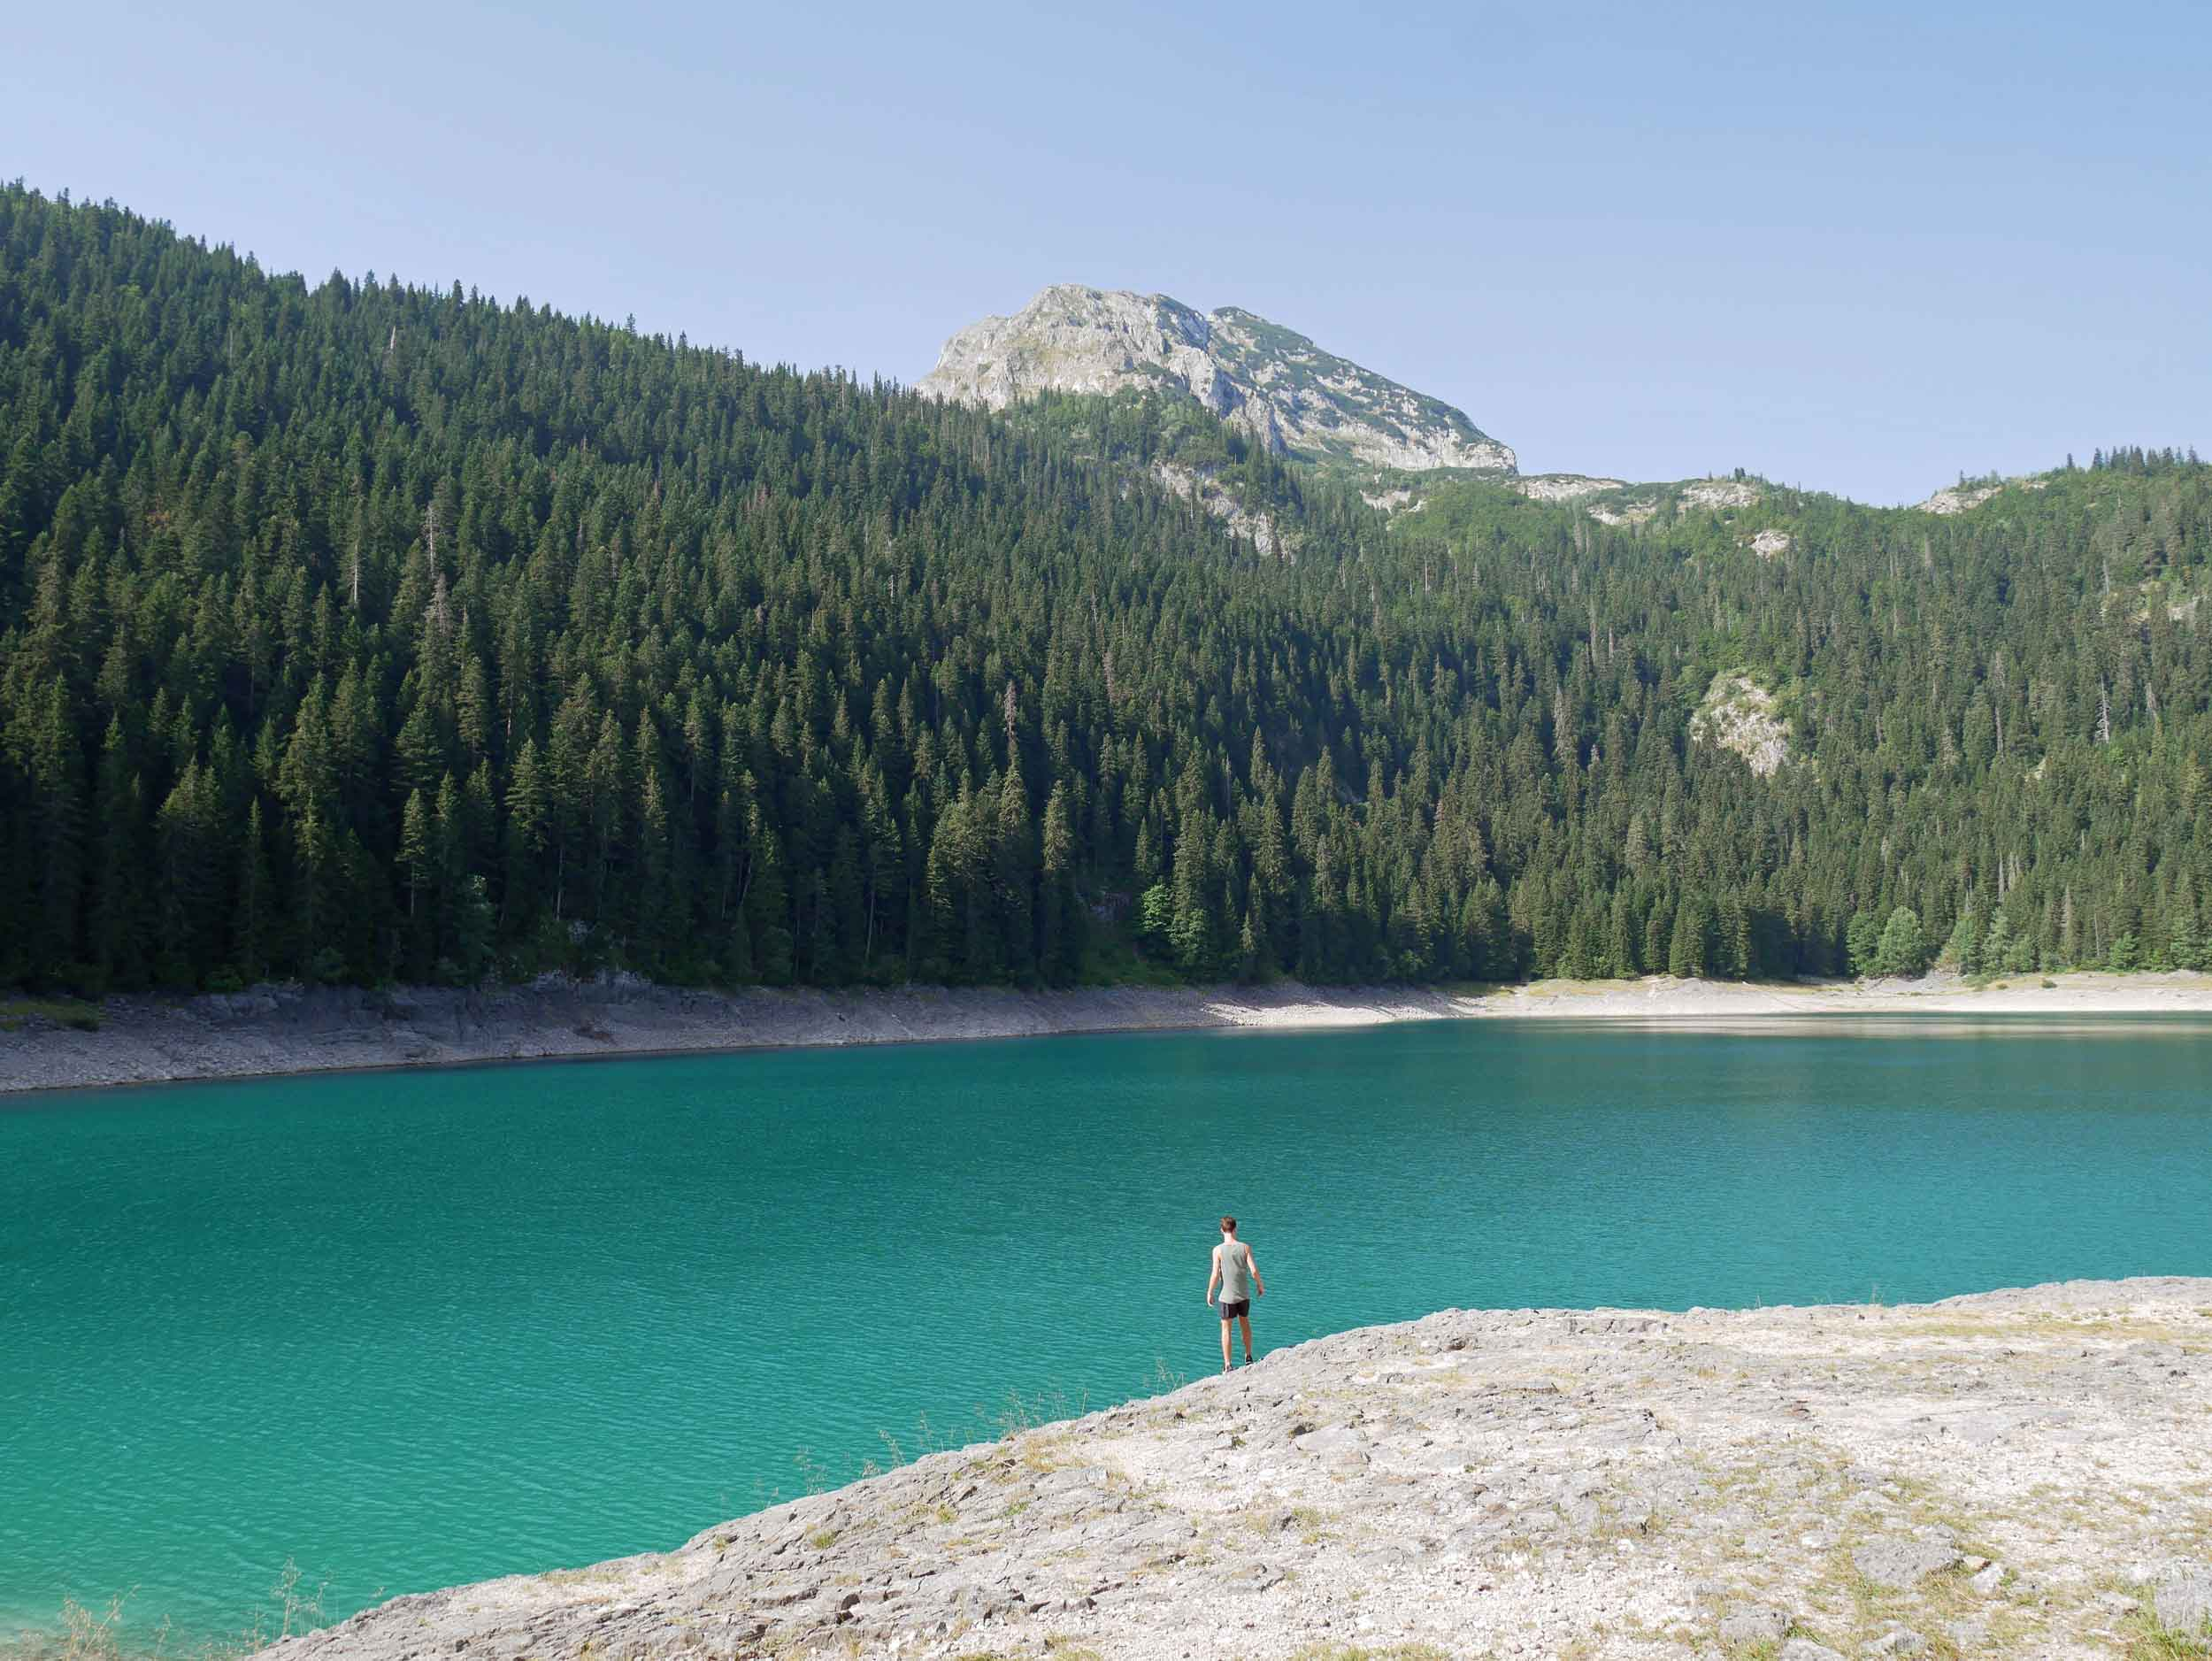 The calm waters of the Black Lake reflect the dark greens and blues of the evergreens and pines beyond.